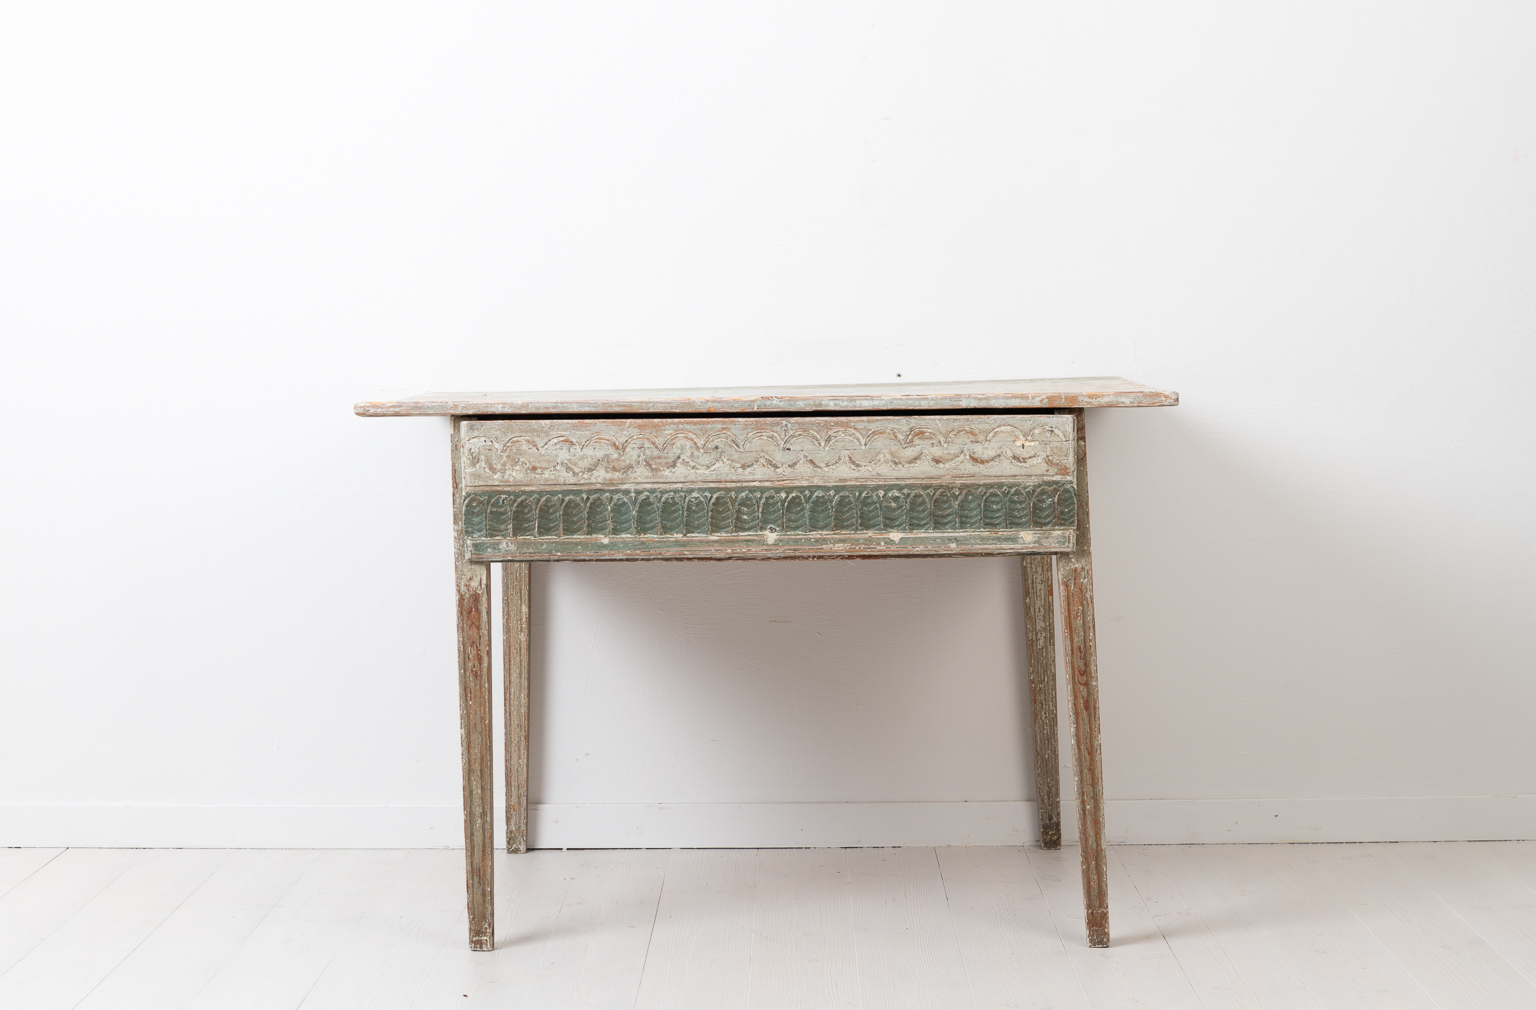 Gustavian and neoclassical side table from northern Sweden. The table is from the province Hälsingland and made around 1790.